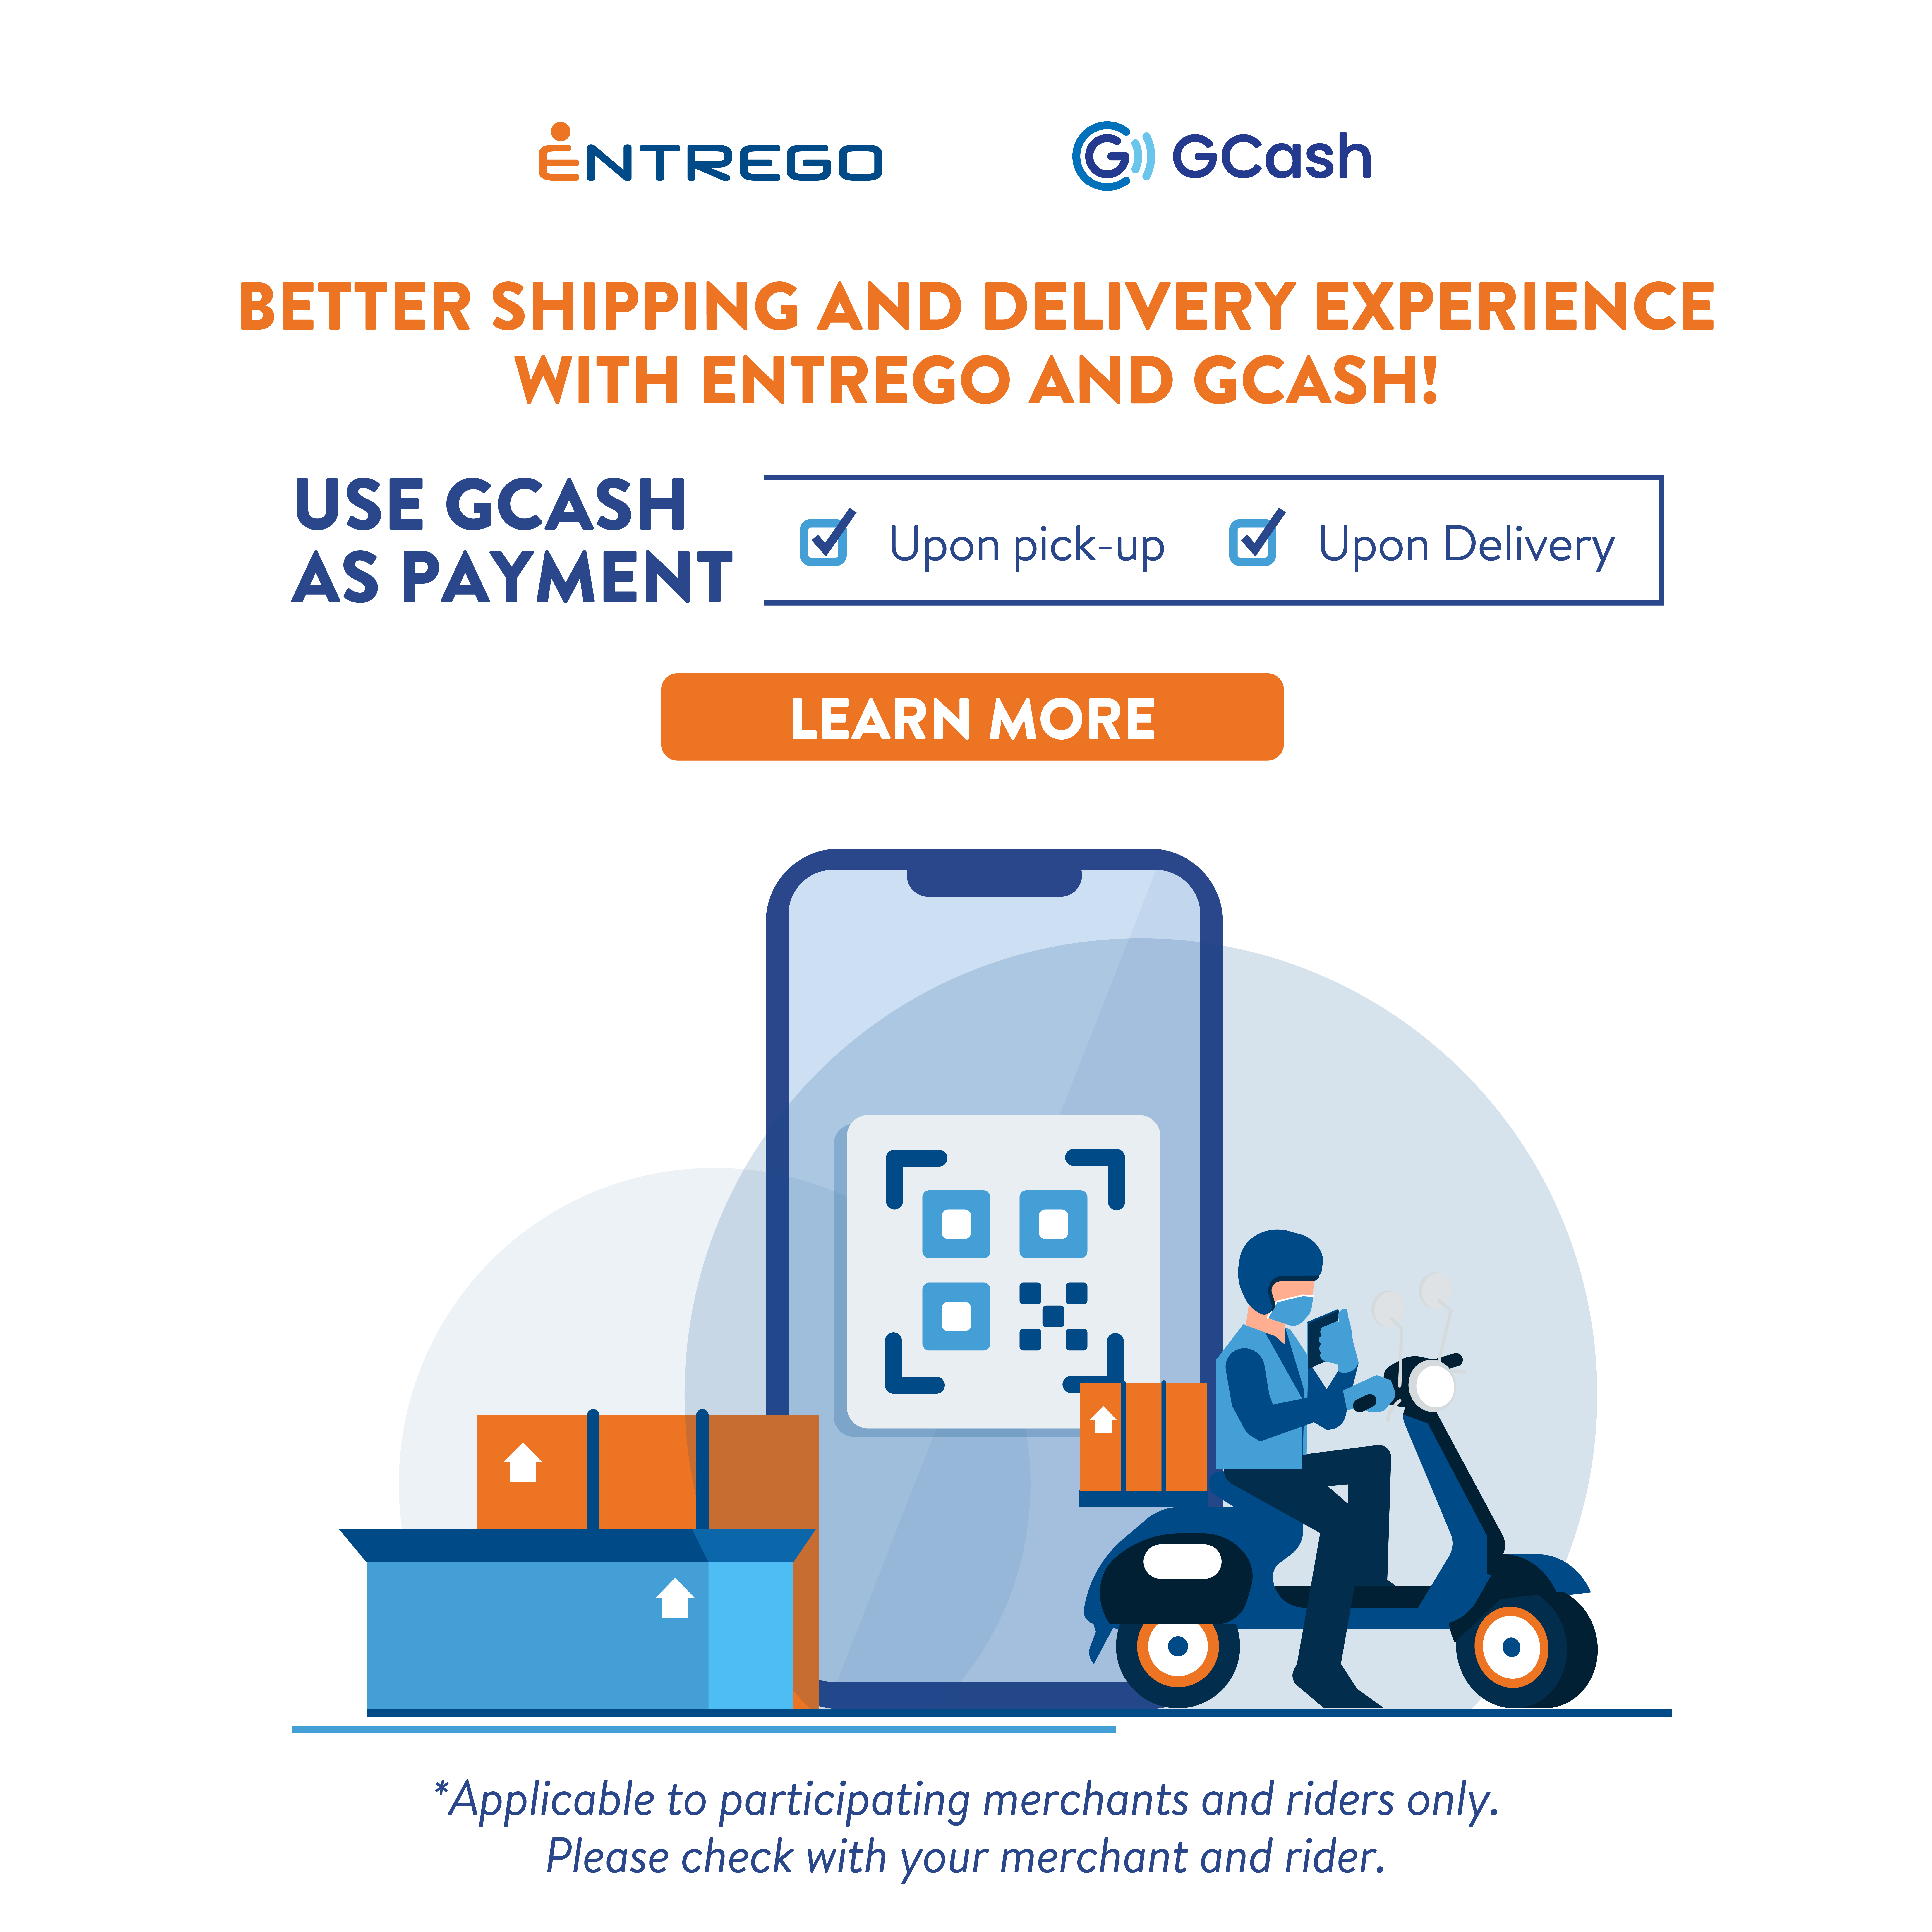 use-gcash-as-payment